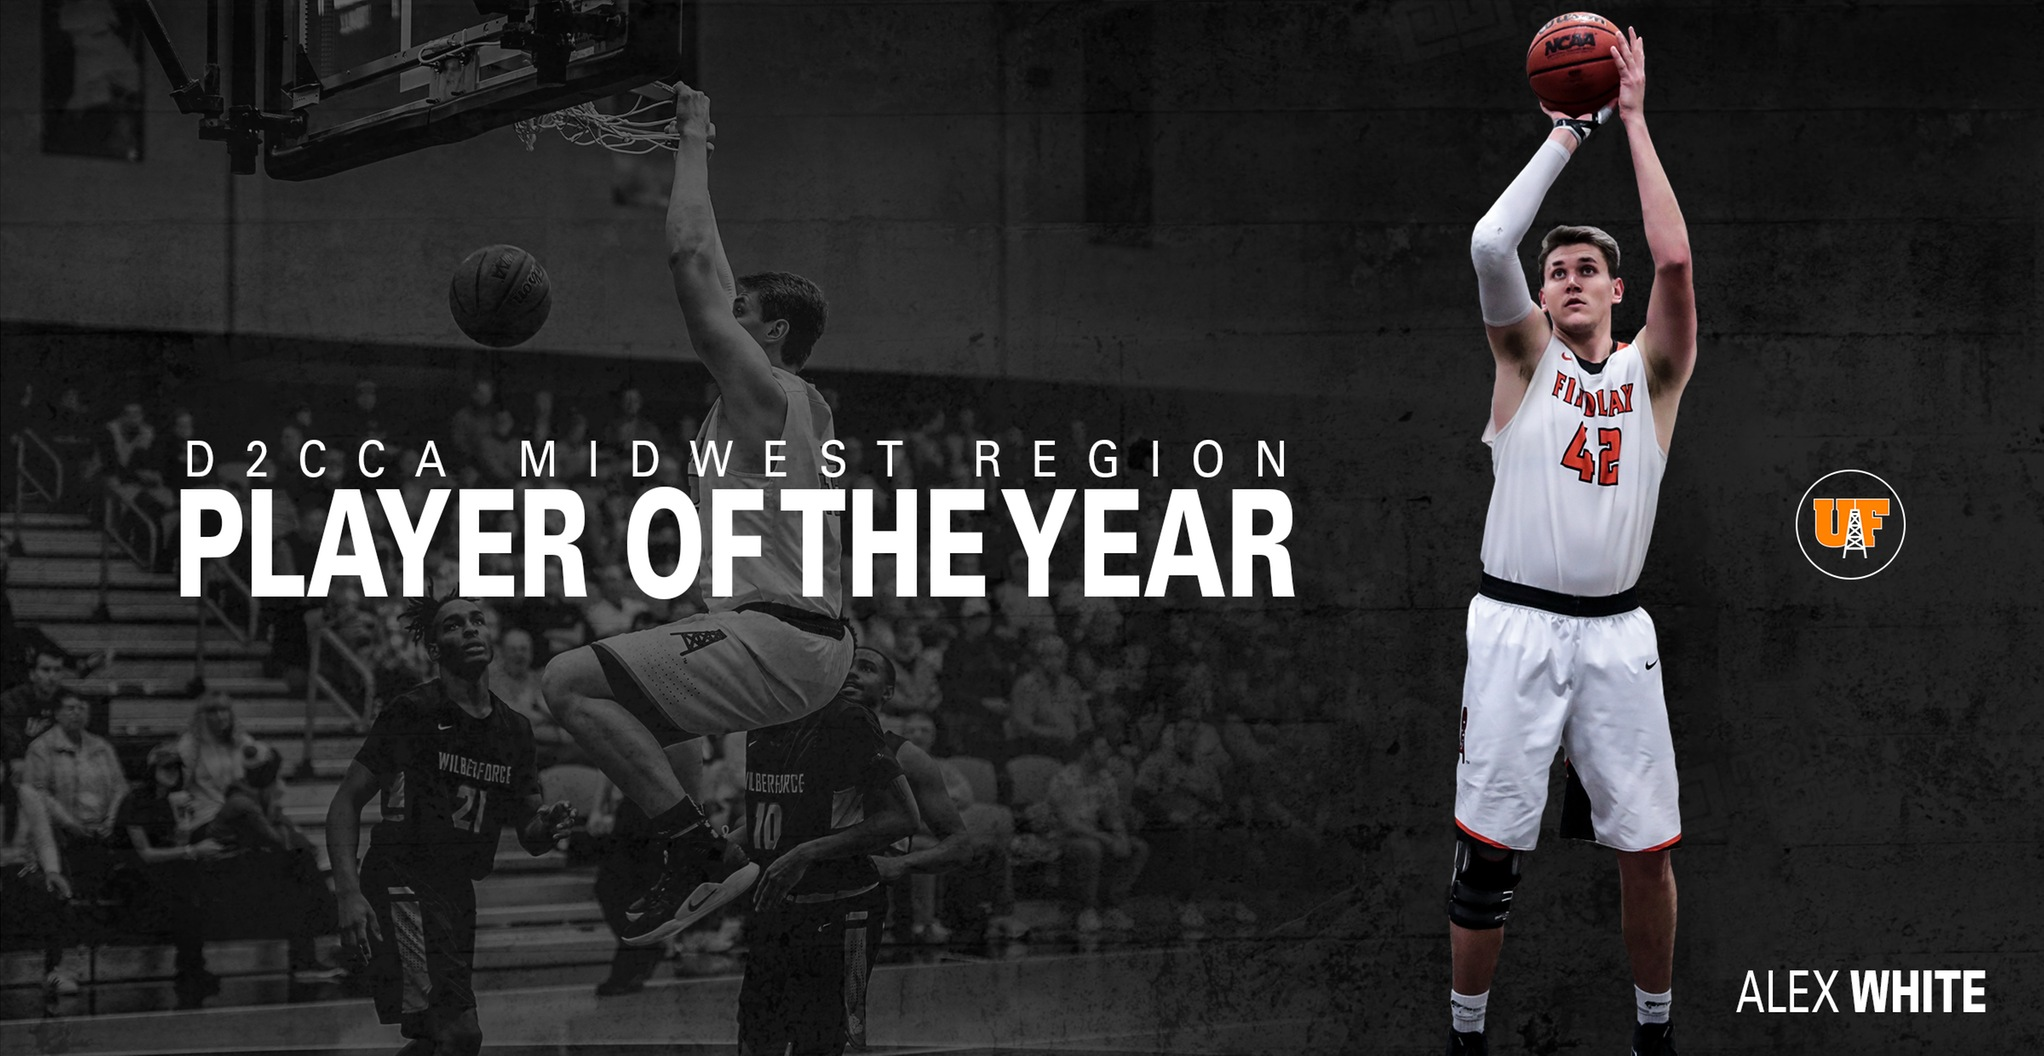 White Named D2CCA Midwest Region Player of the Year